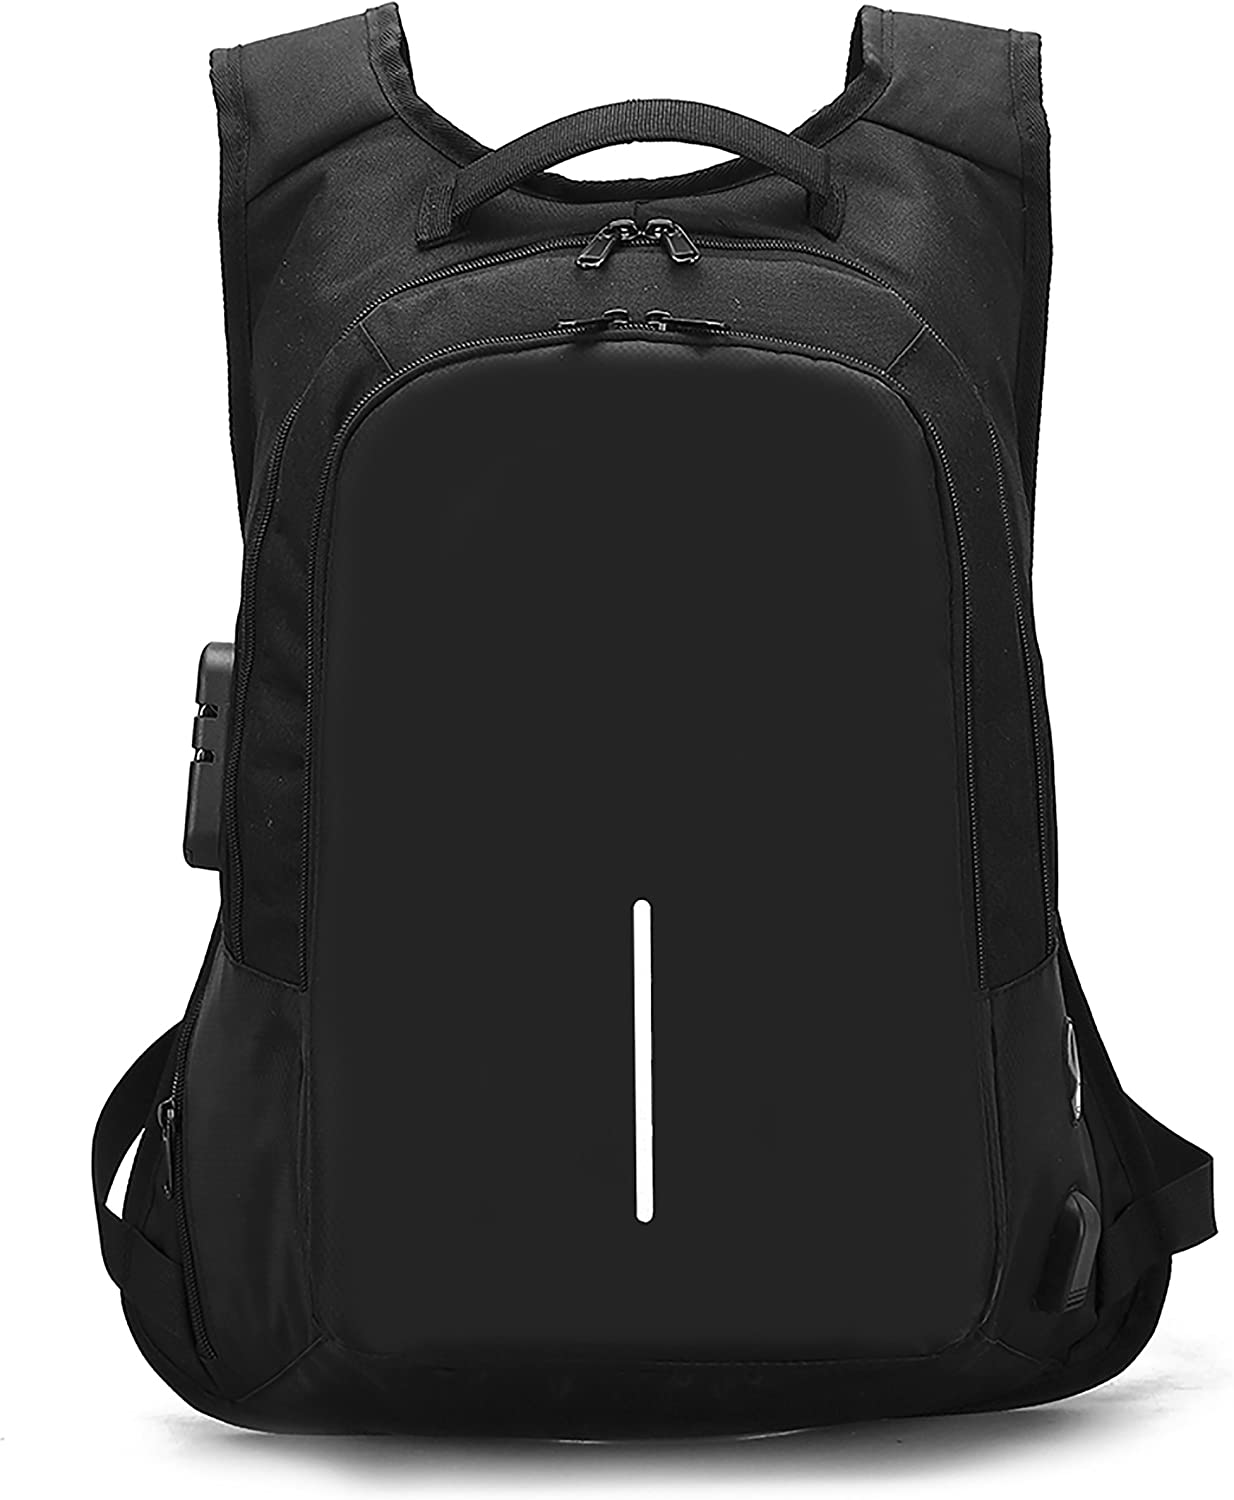 Anti-theft Travel Backpack, Business Laptop School College Bookbag with USB Charging Port for Men Women